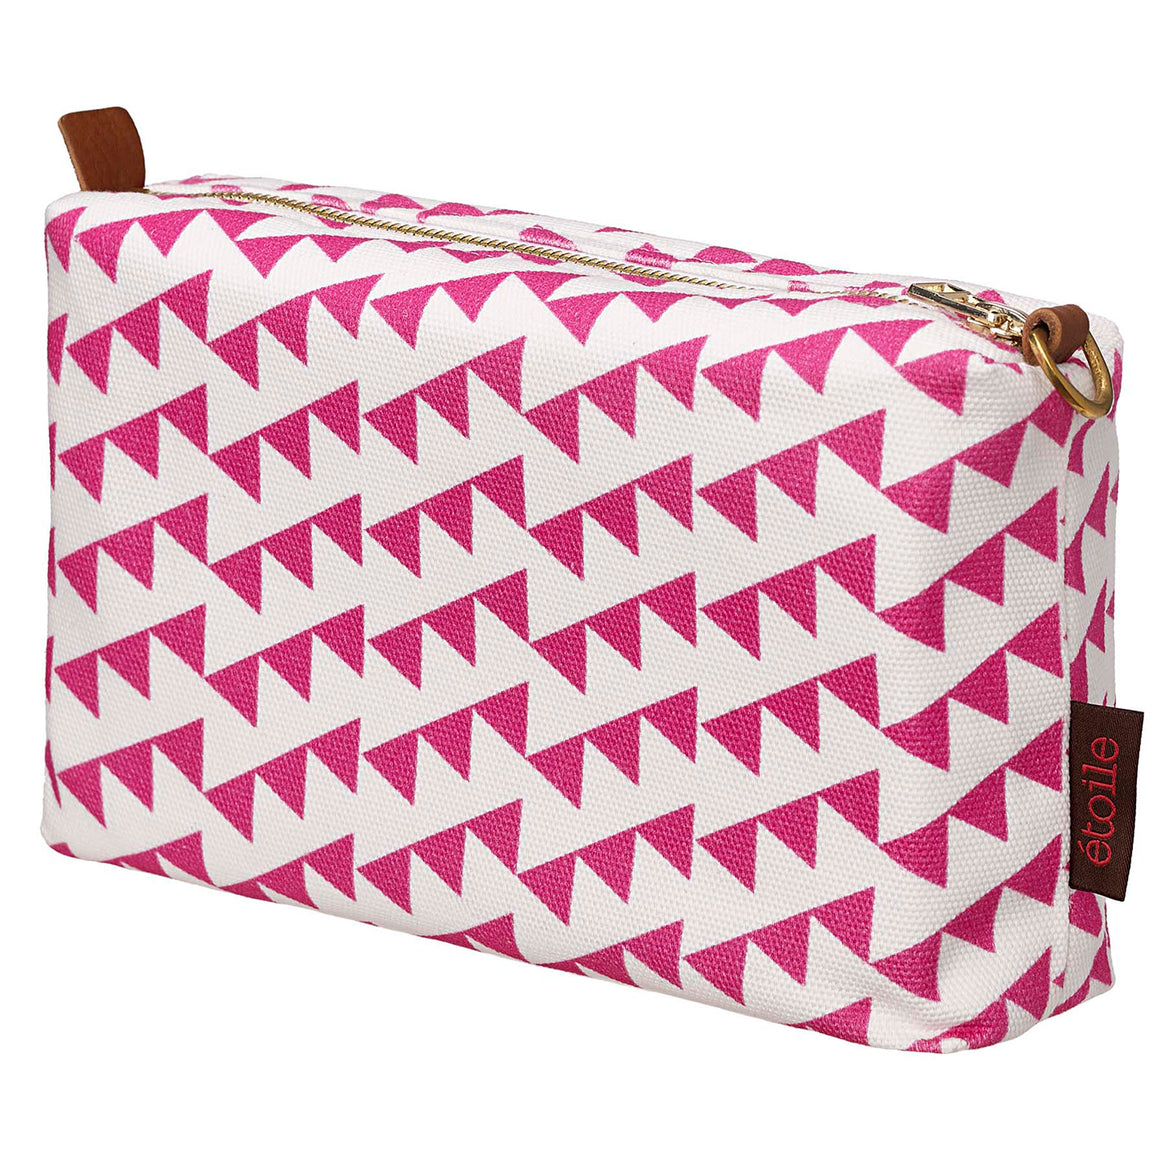 Bunting Geometric Pattern Canvas Wash Toiletry Travel Bag in Bright Fuchsia Pink Canada